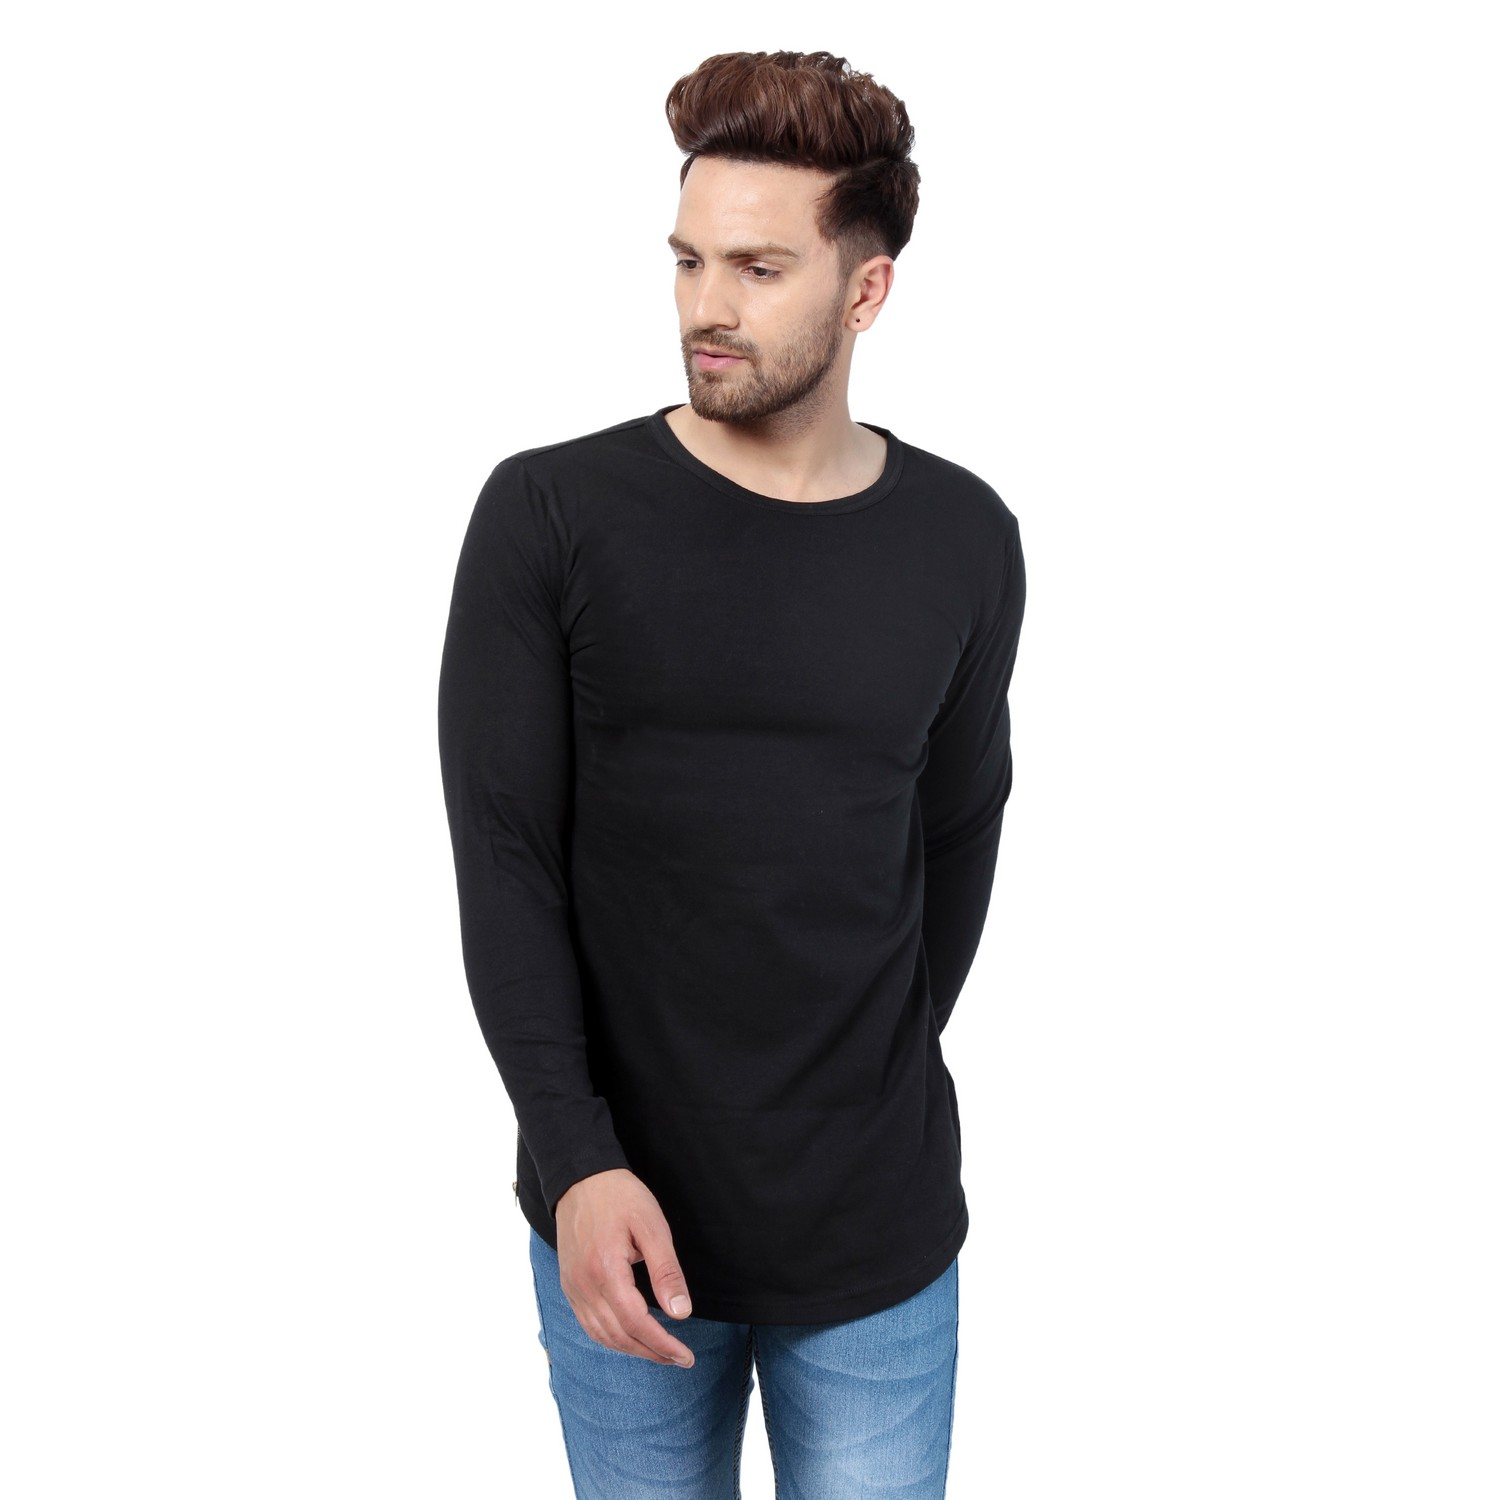 PAUSE Black Solid Cotton Round Neck Slim Fit Full Sleeve Men's T Shirt